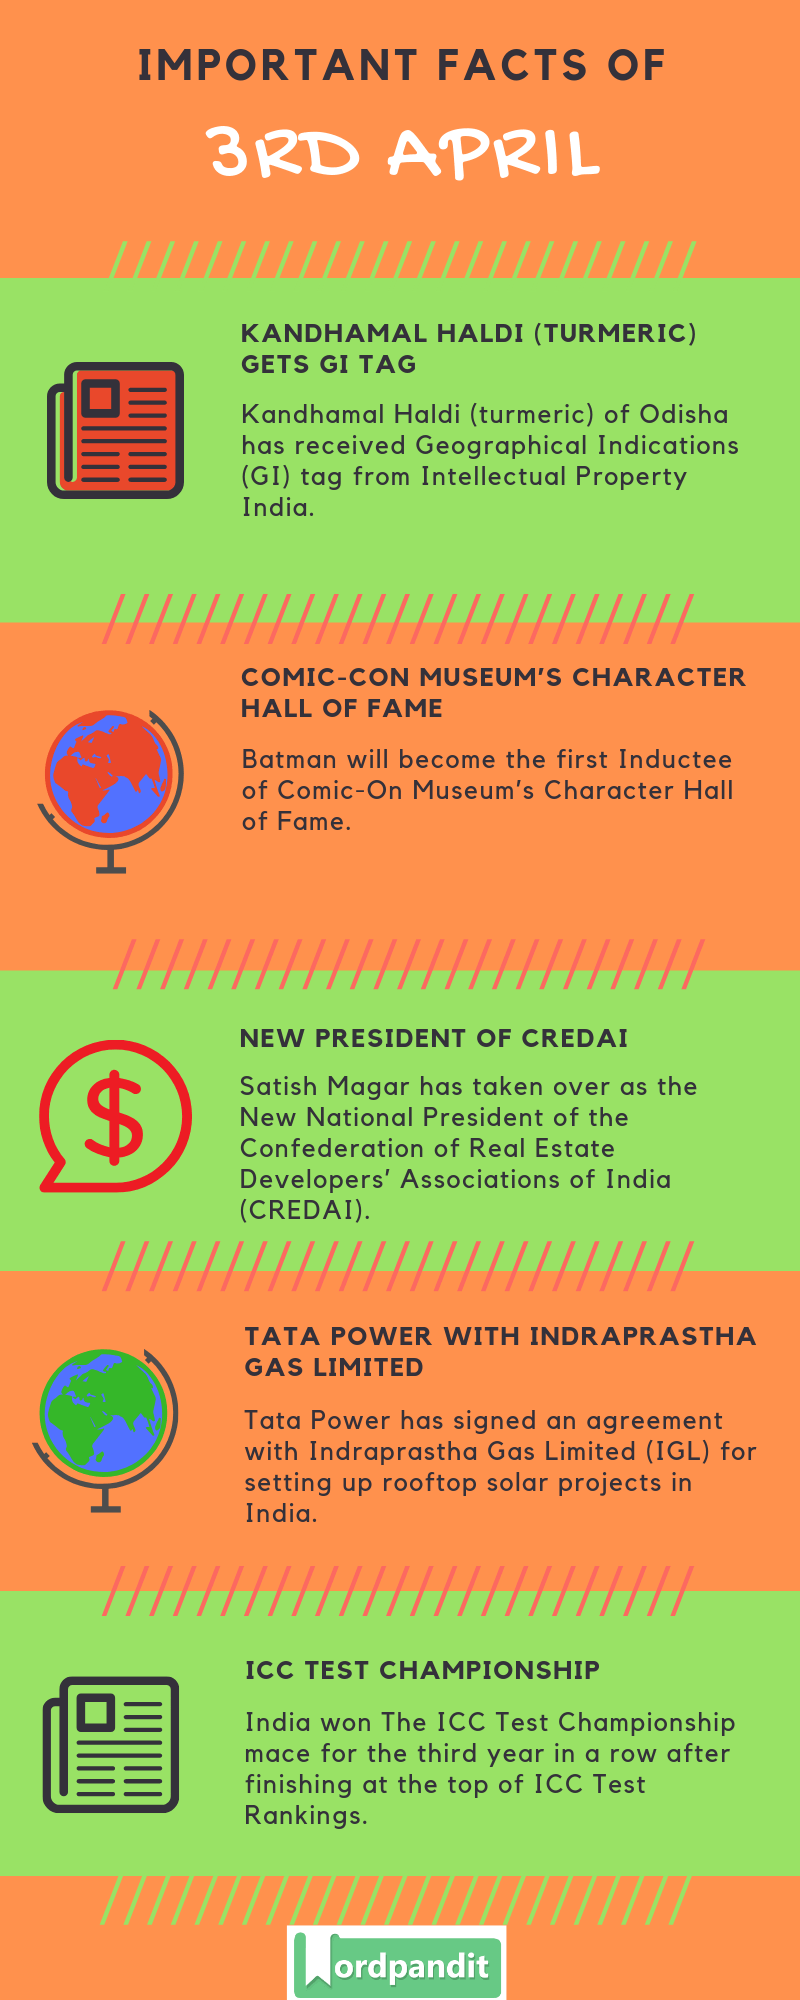 Daily Current Affairs 3 April 2019 Current Affairs Quiz 3 April 2019 Current Affairs Infographic